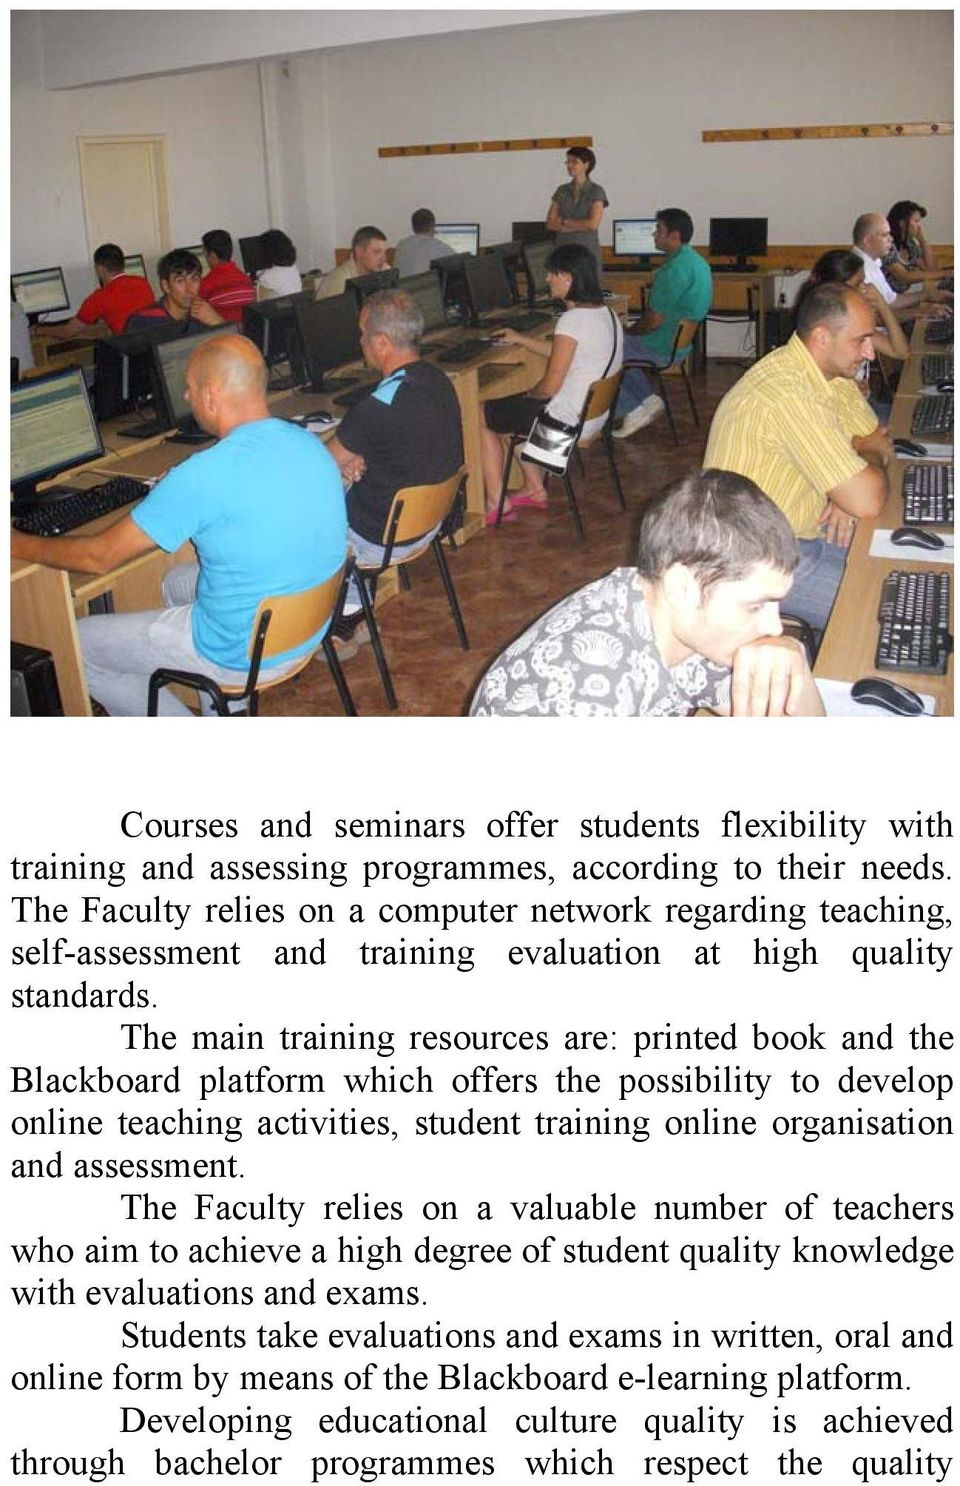 The main training resources are: printed book and the Blackboard platform which offers the possibility to develop online teaching activities, student training online organisation and assessment.